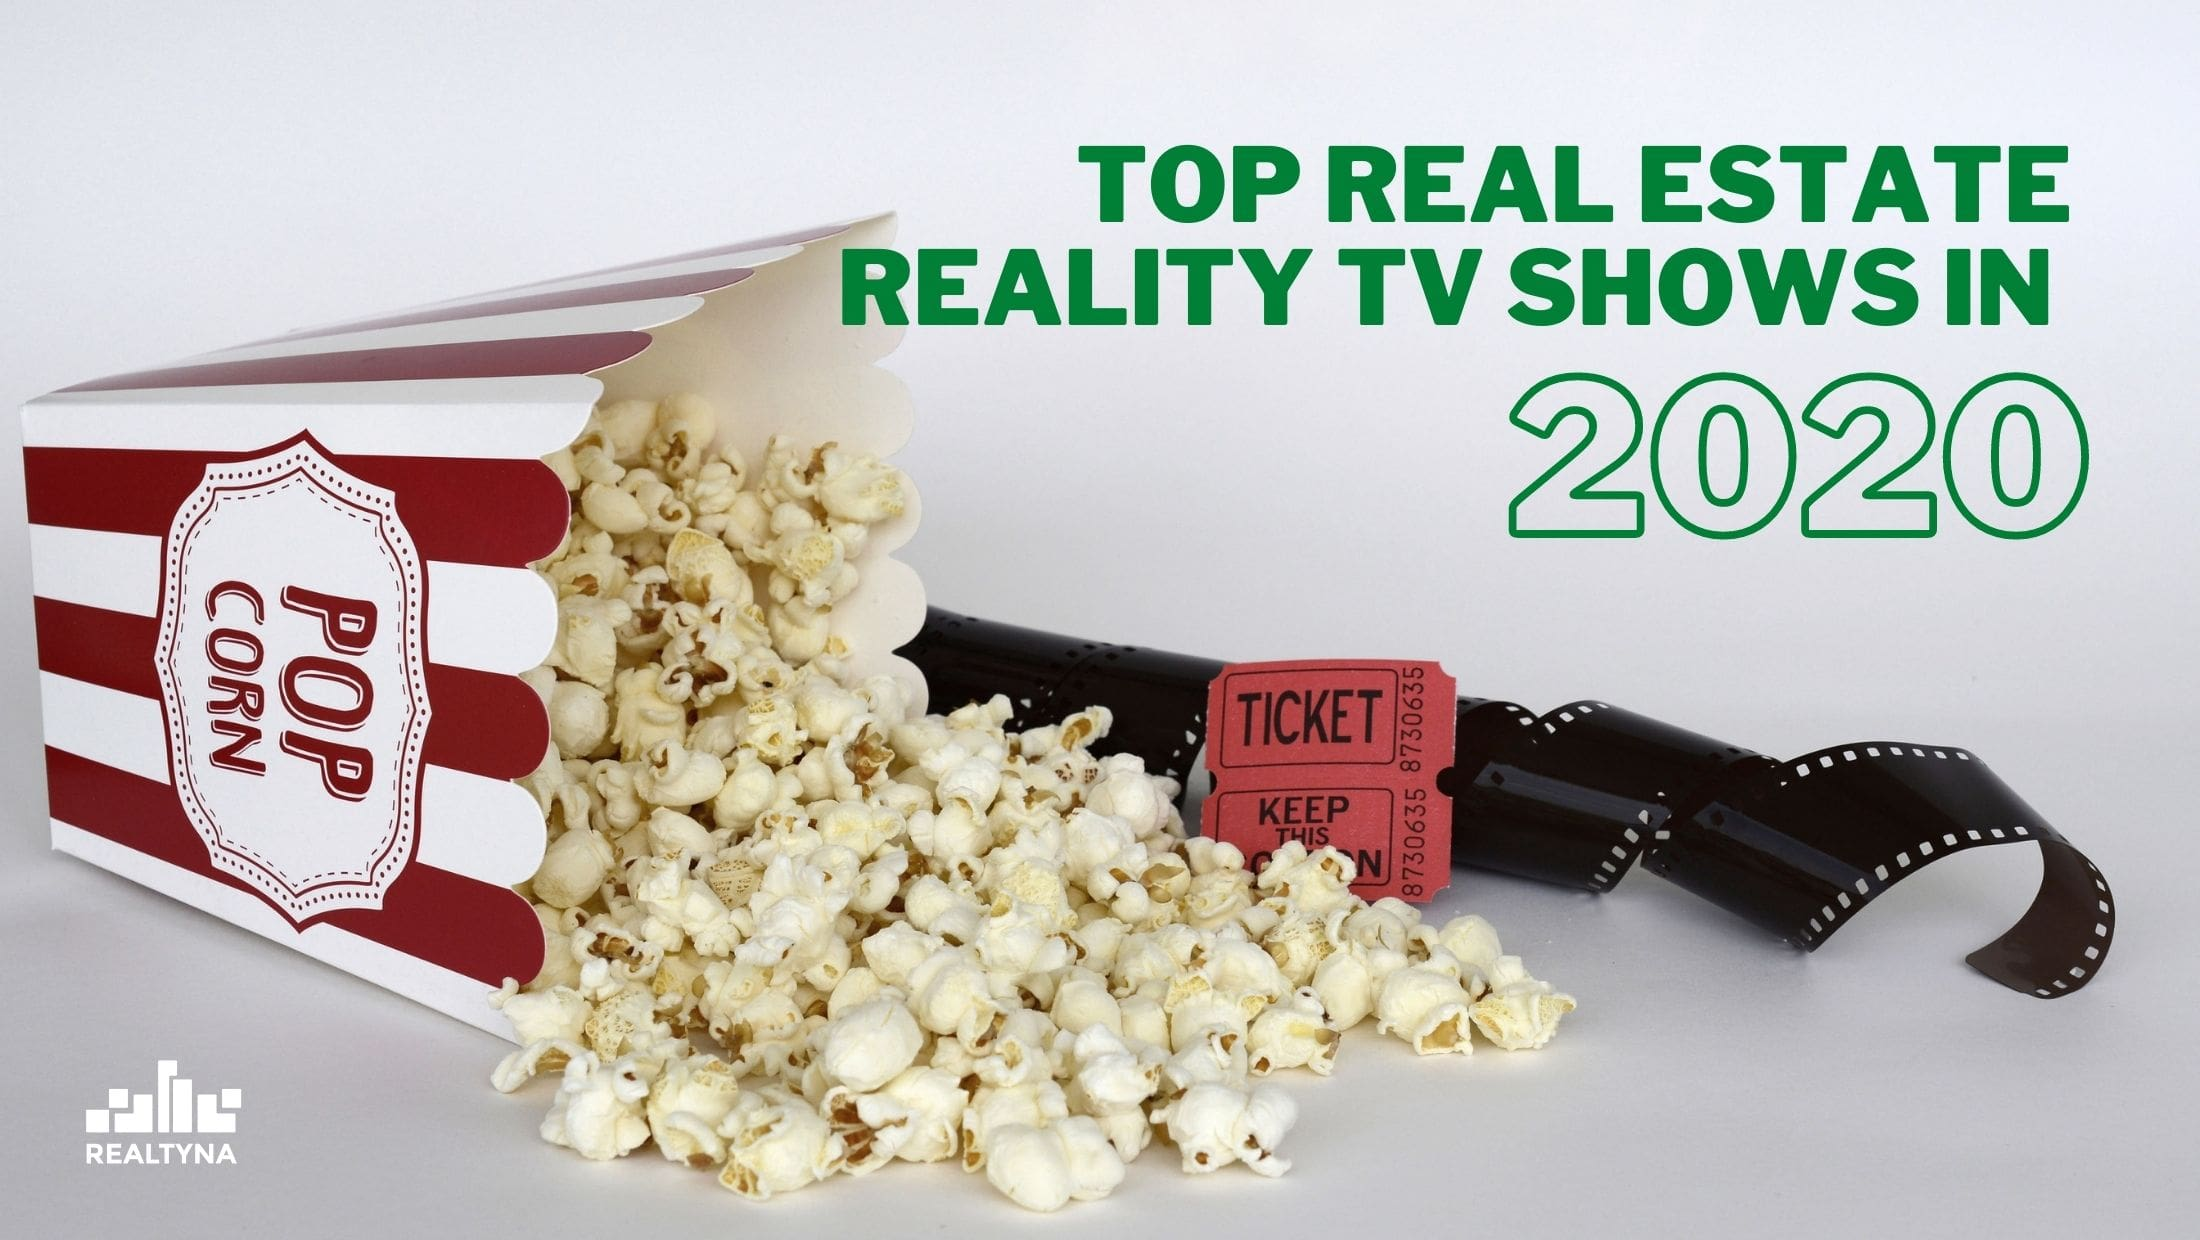 Top Real Estate Reality TV Shows in 2020